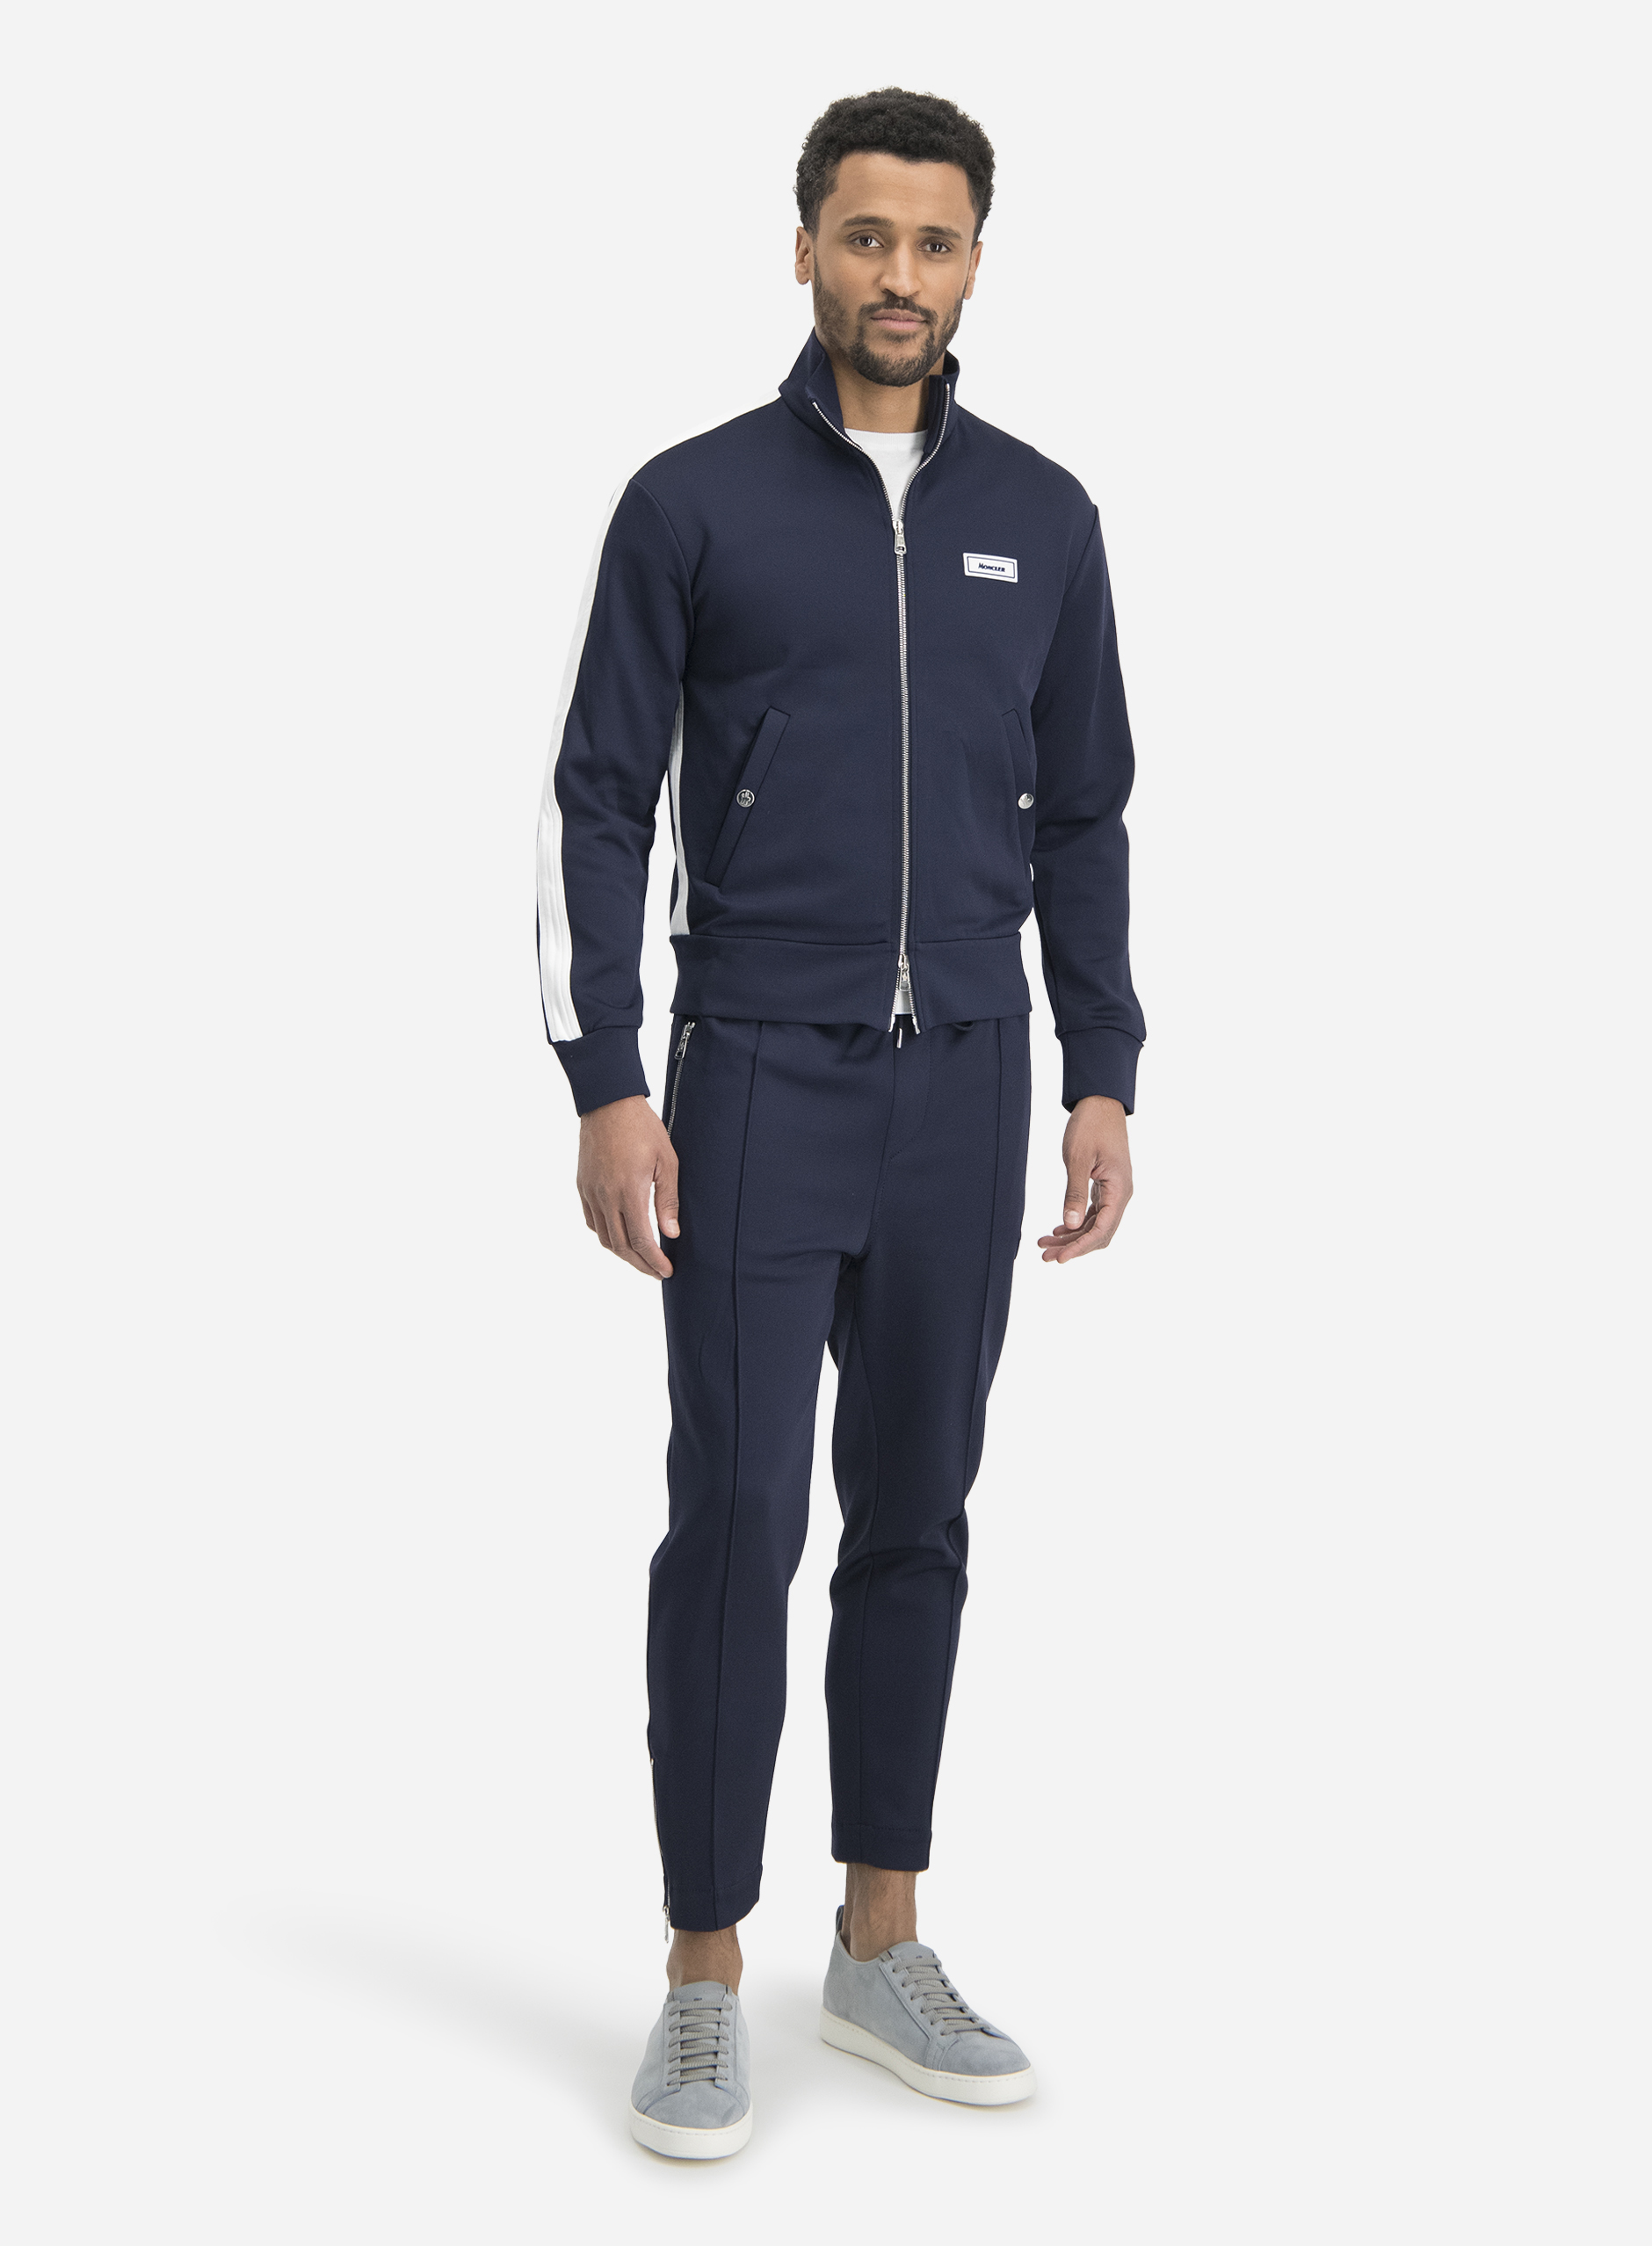 The Moncler Fitness Look